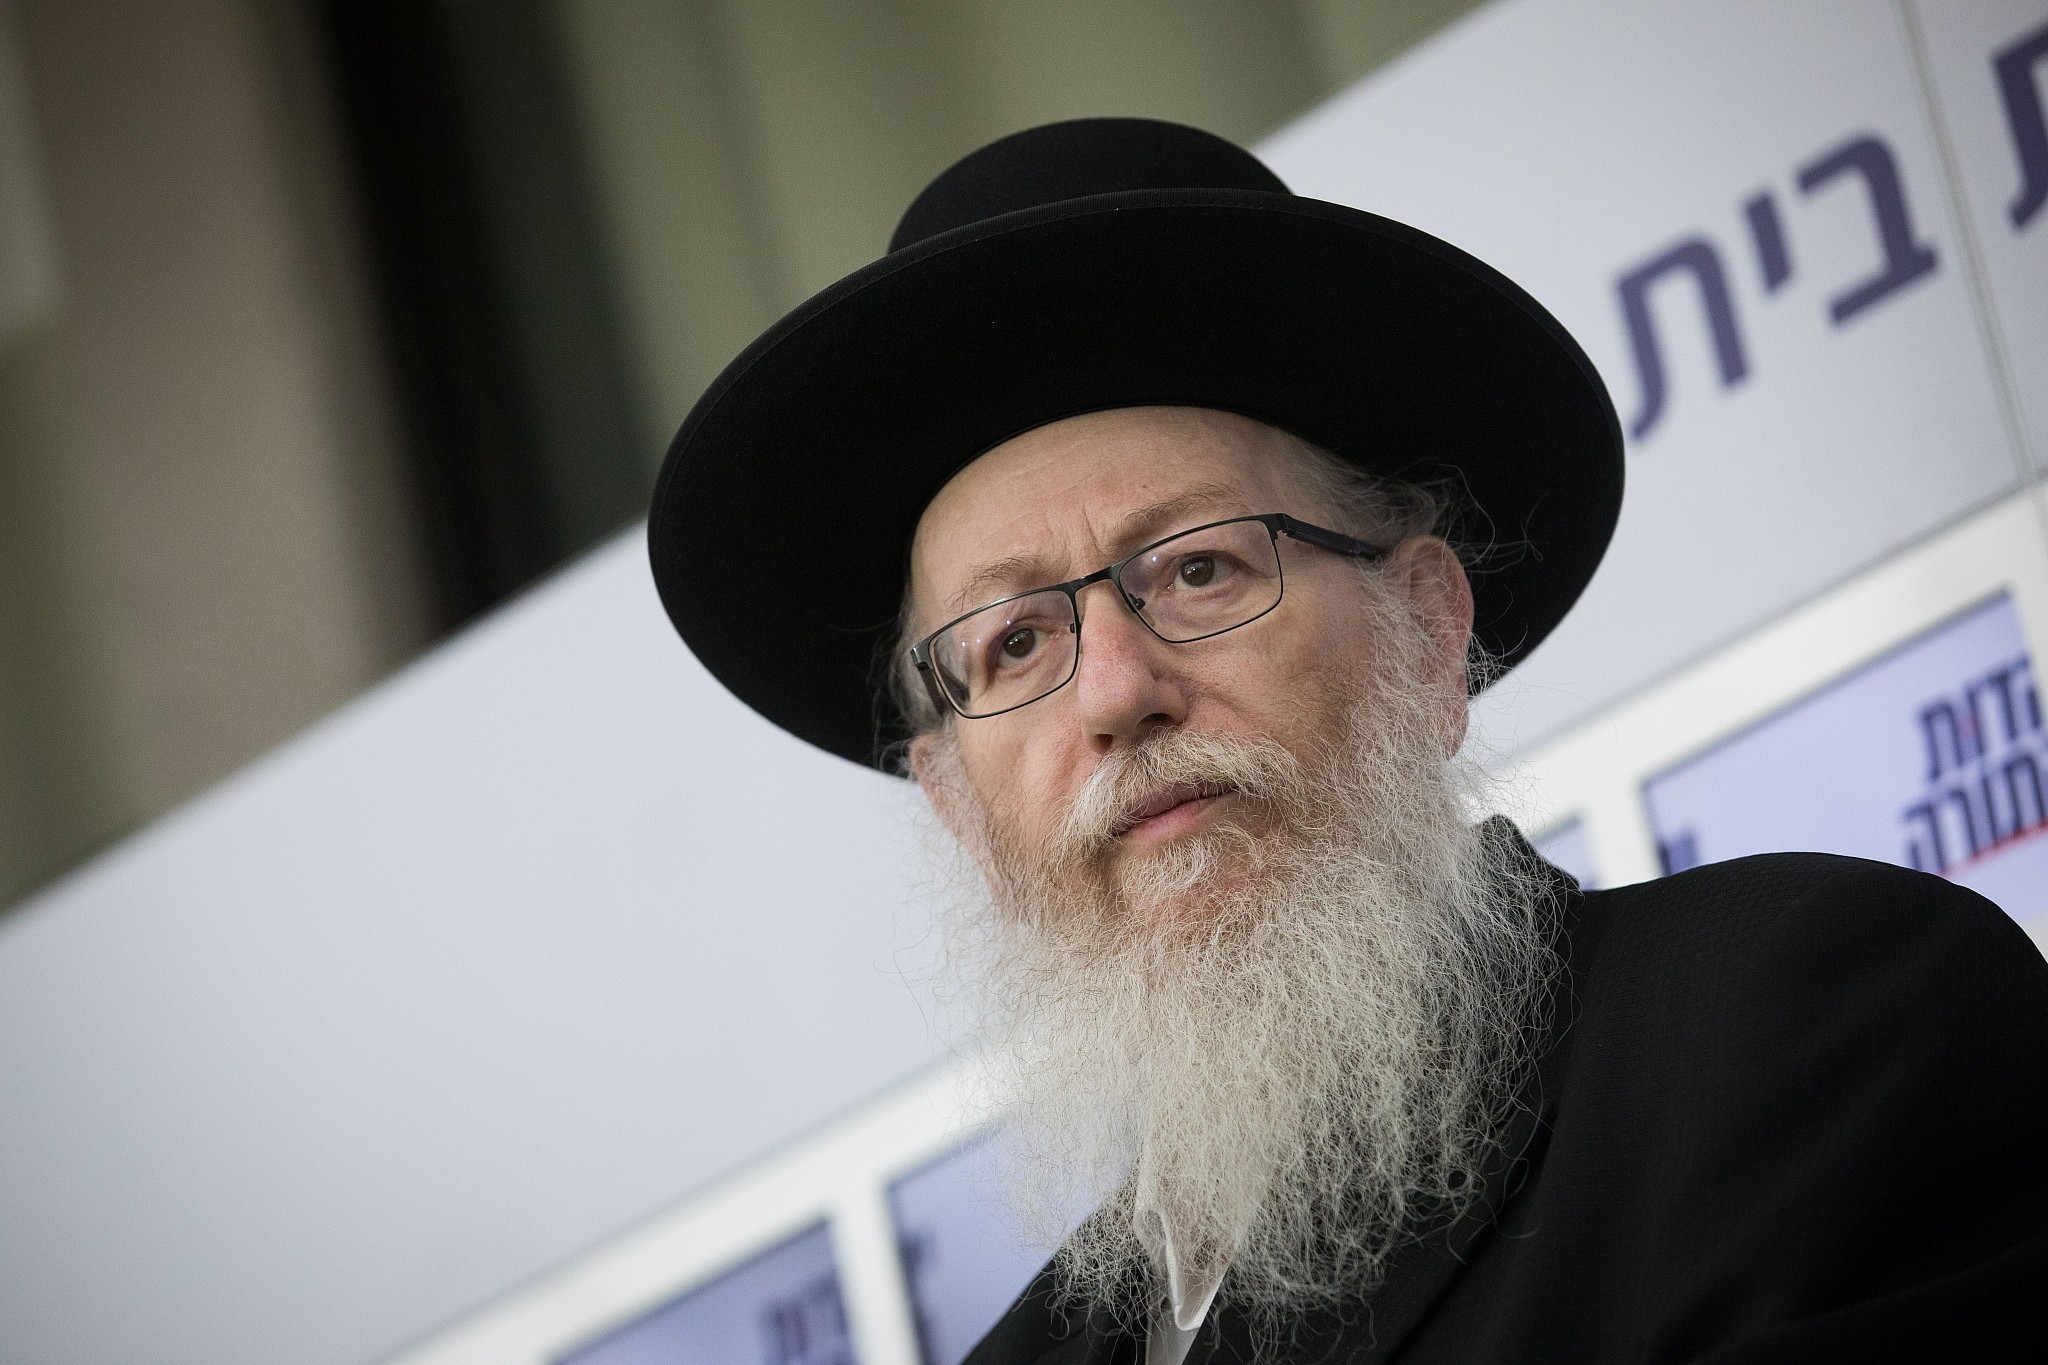 fbb53dbf301 Deputy health minister Yaakov Litzman seen during a press conference after  meeting with president Reuven Rivlin